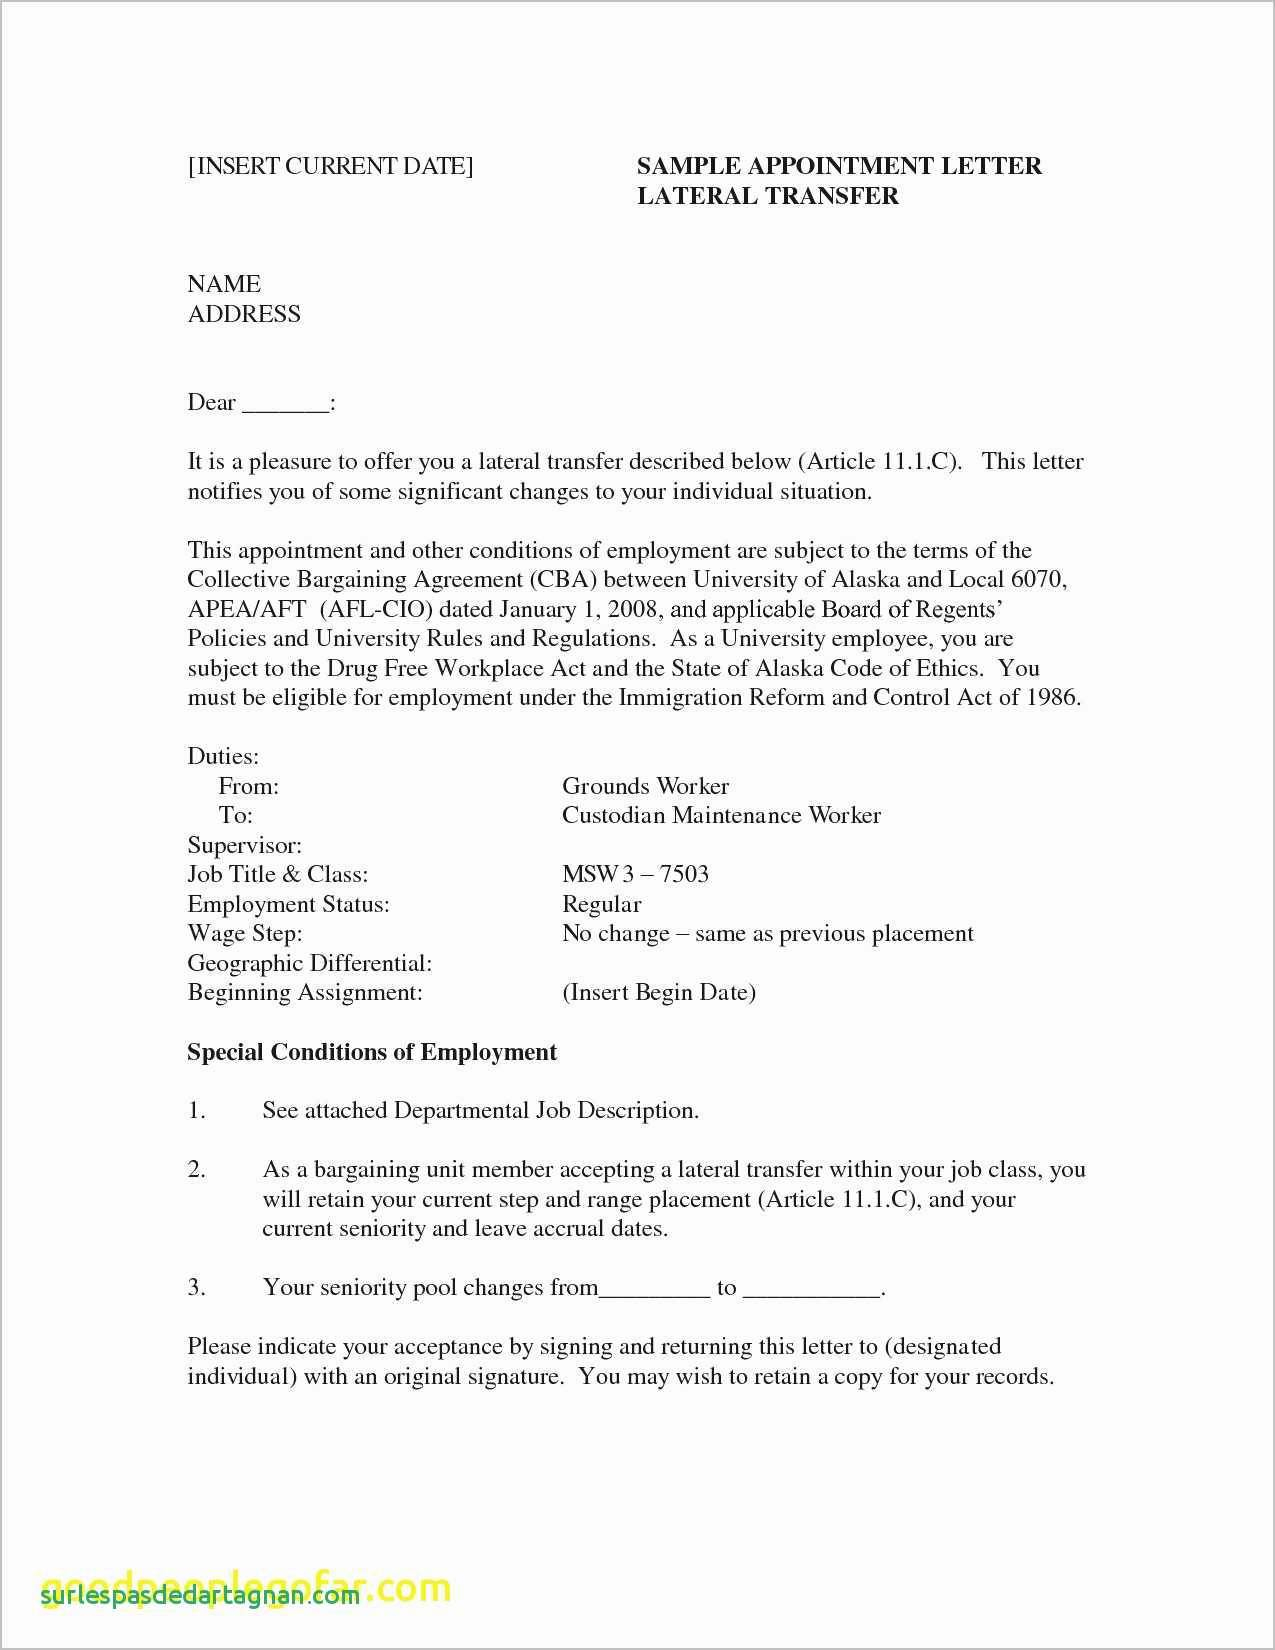 Html Letter Template - 13 Awesome Free HTML Newsletter Templates for Email Resume